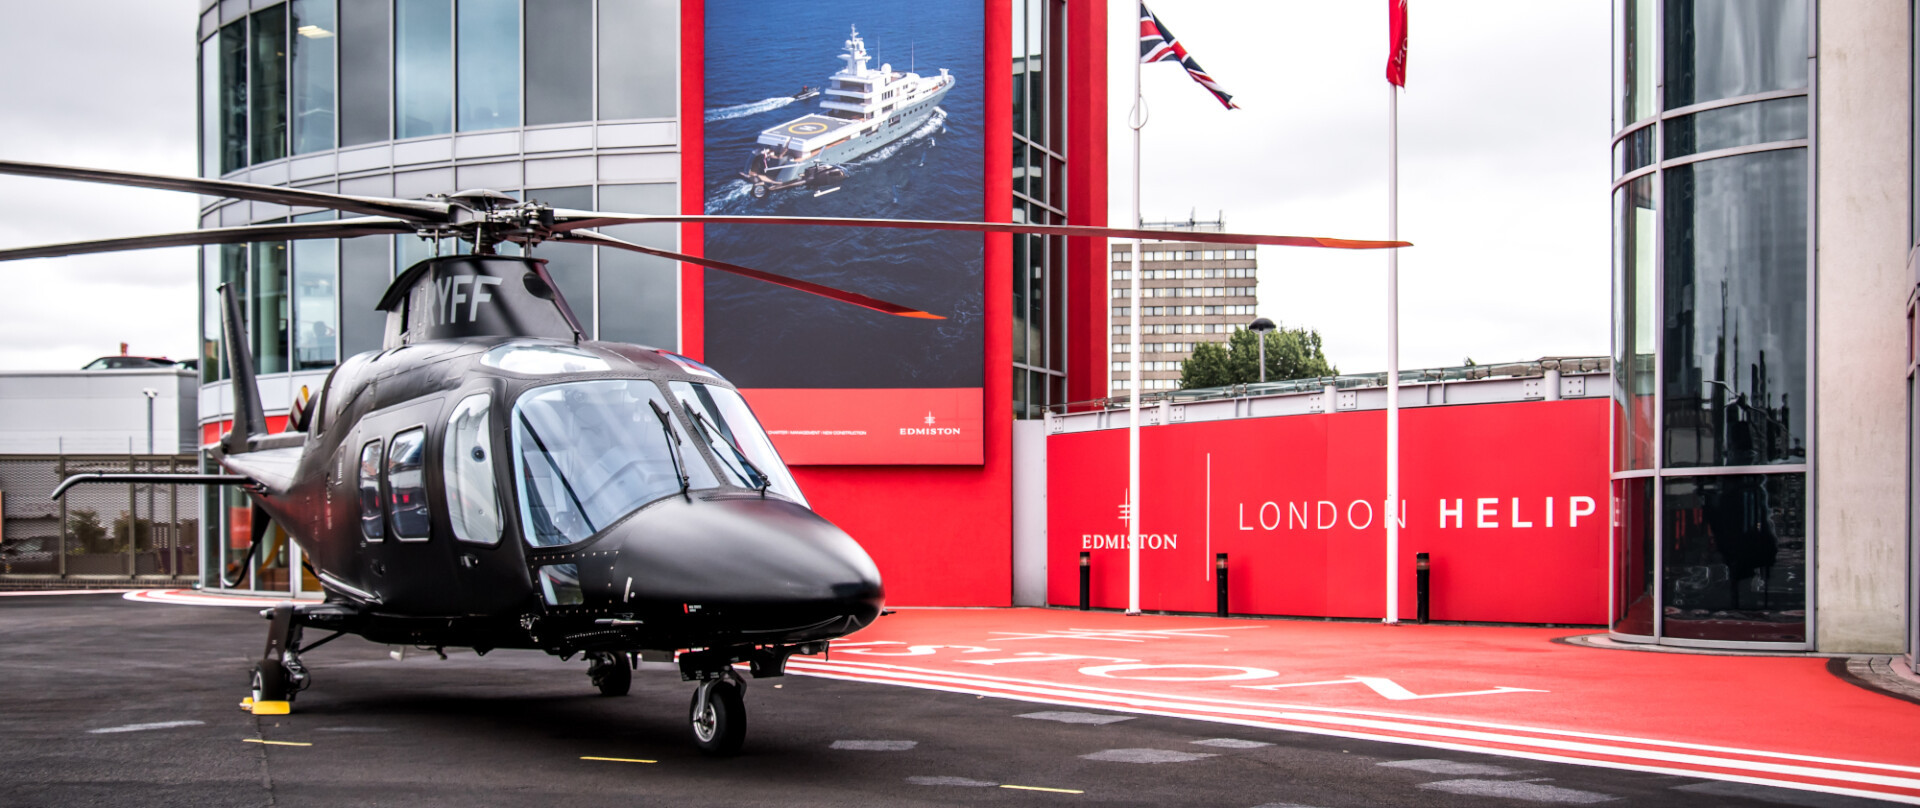 Edmiston partners with the London Heliport photo 1